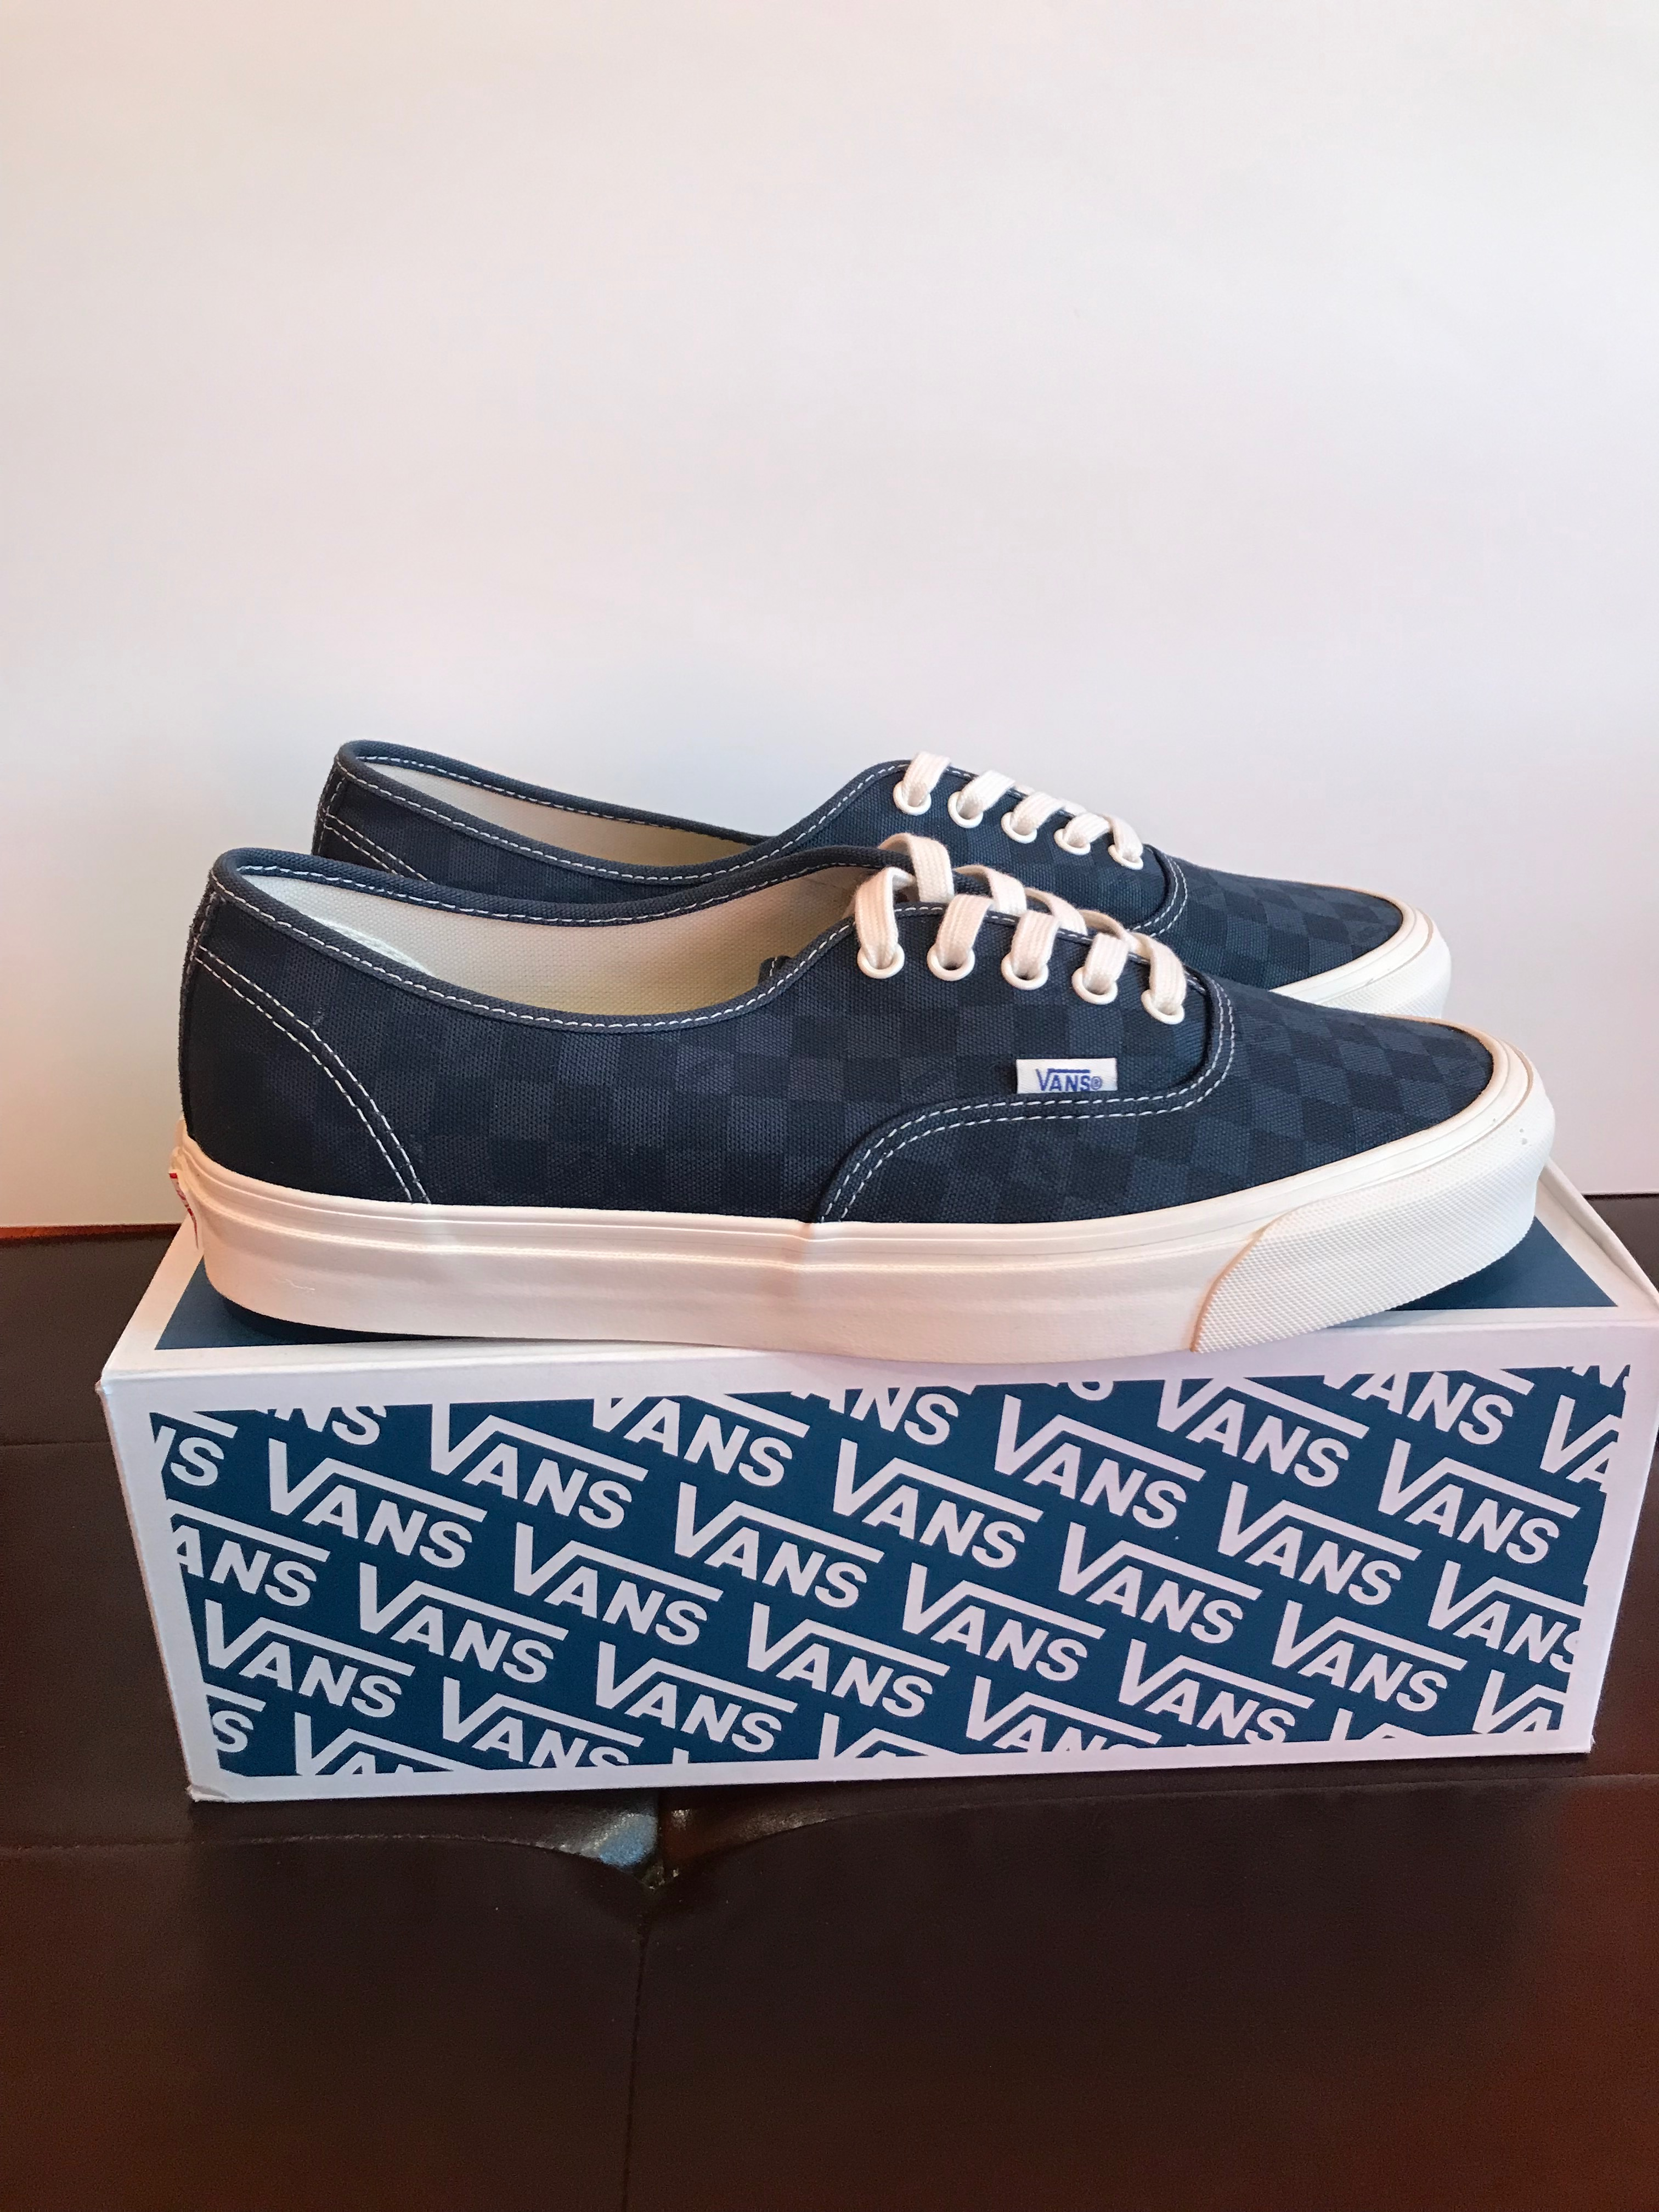 NEW Vans Vault OG Authentic Navy Checkerboard Size 12